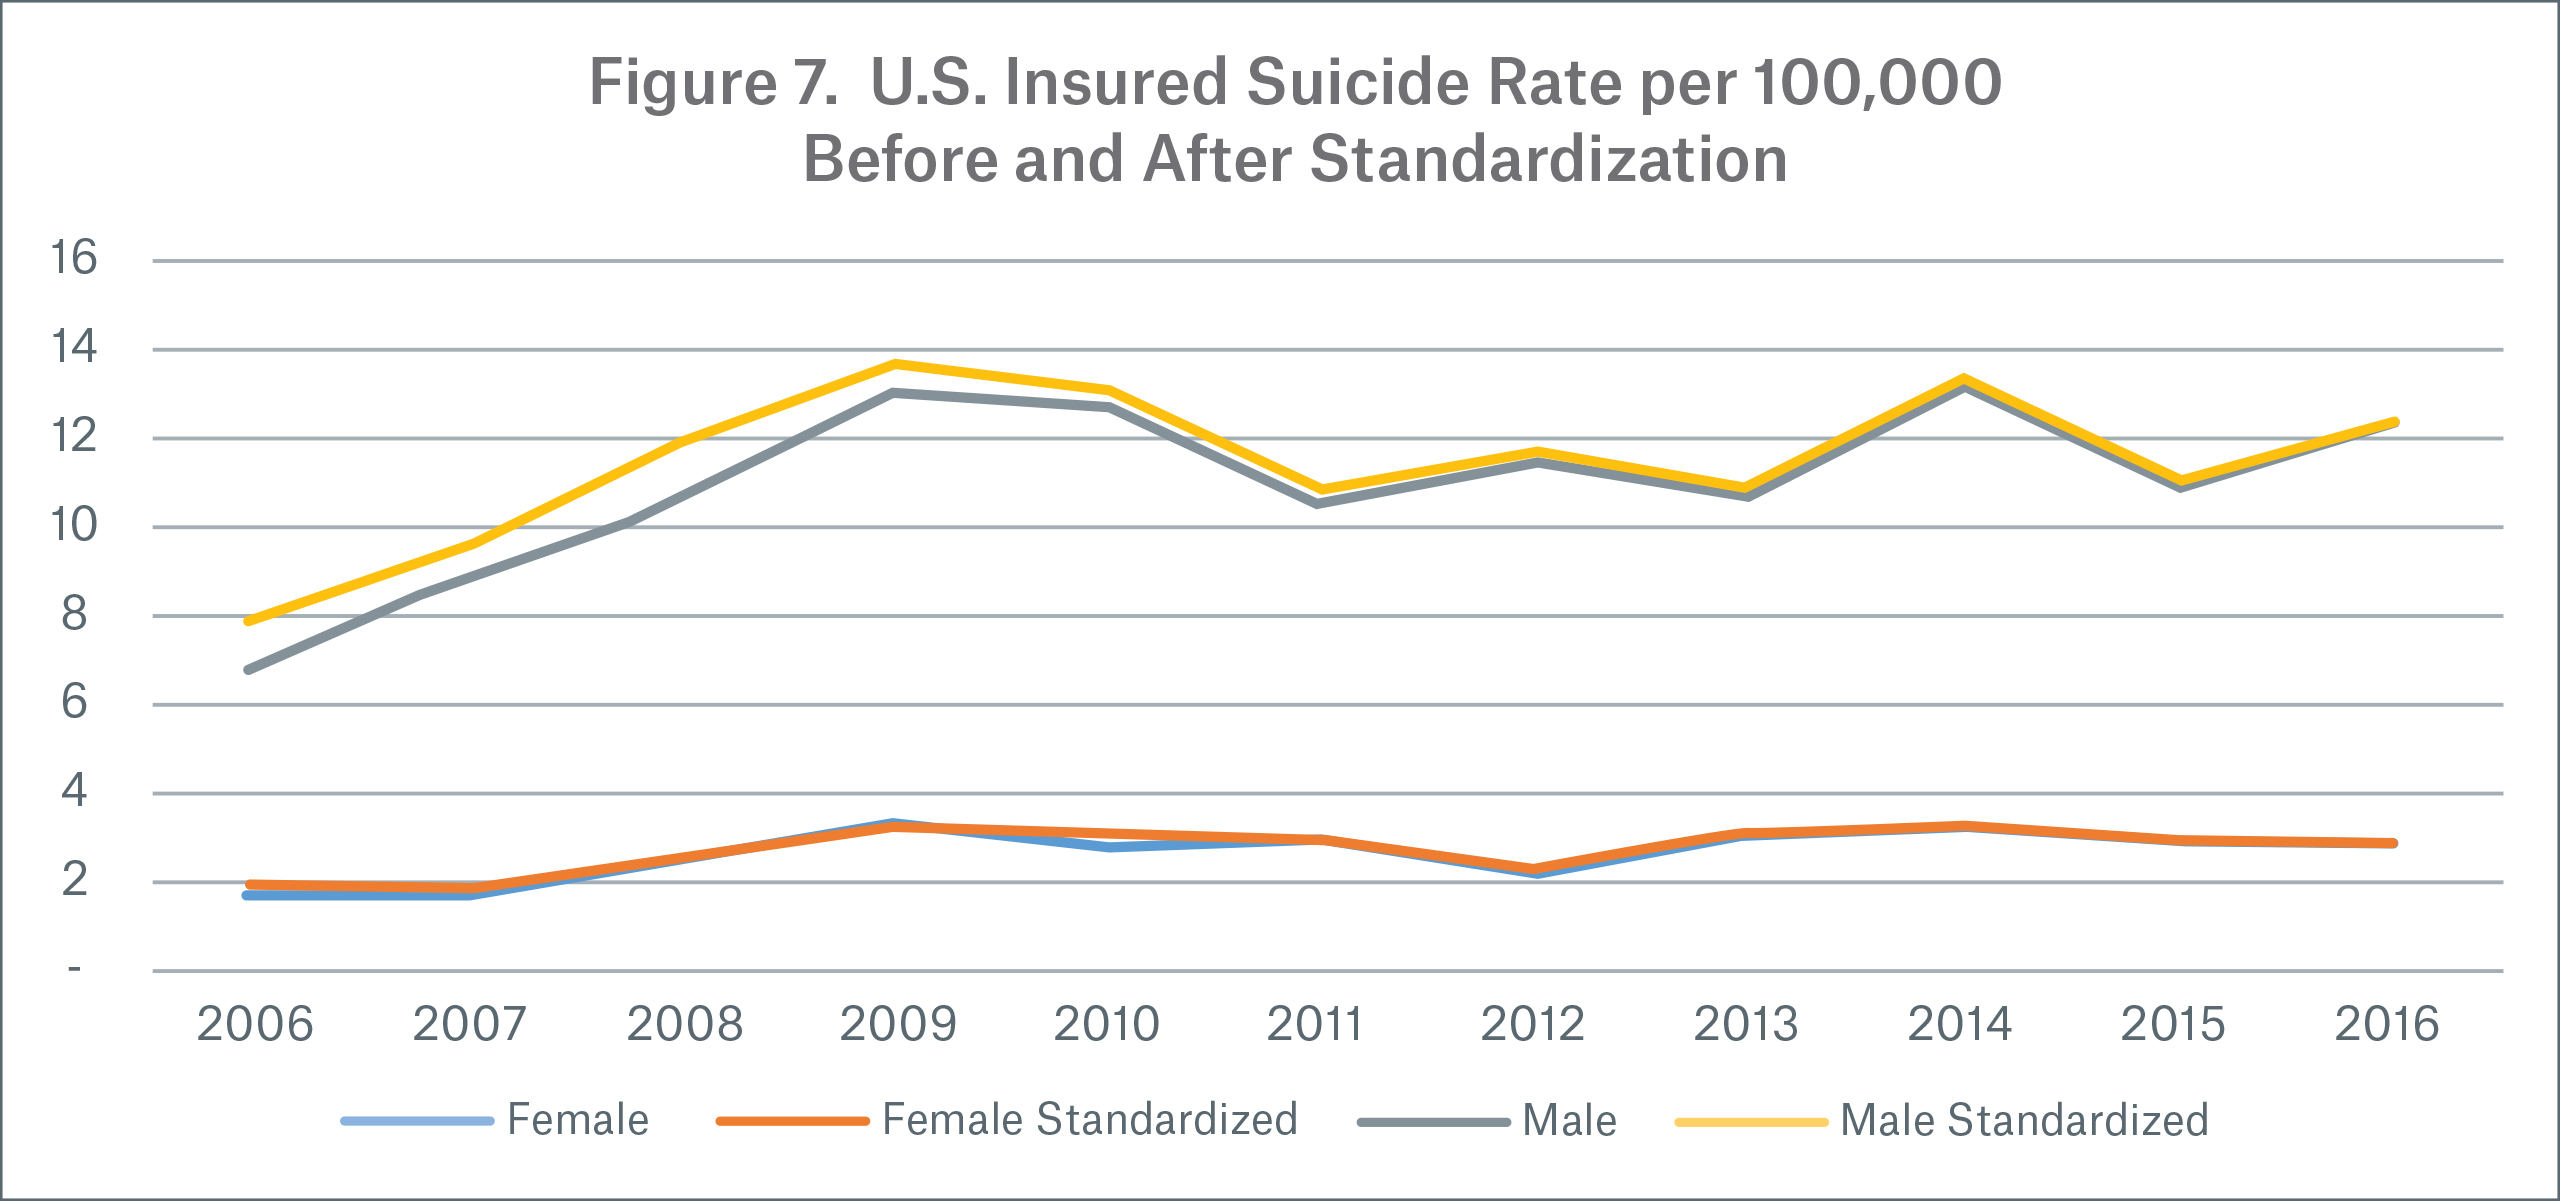 Figure 7 U.S. Insured Suicide Rate per 100,000 Before and After Standardization